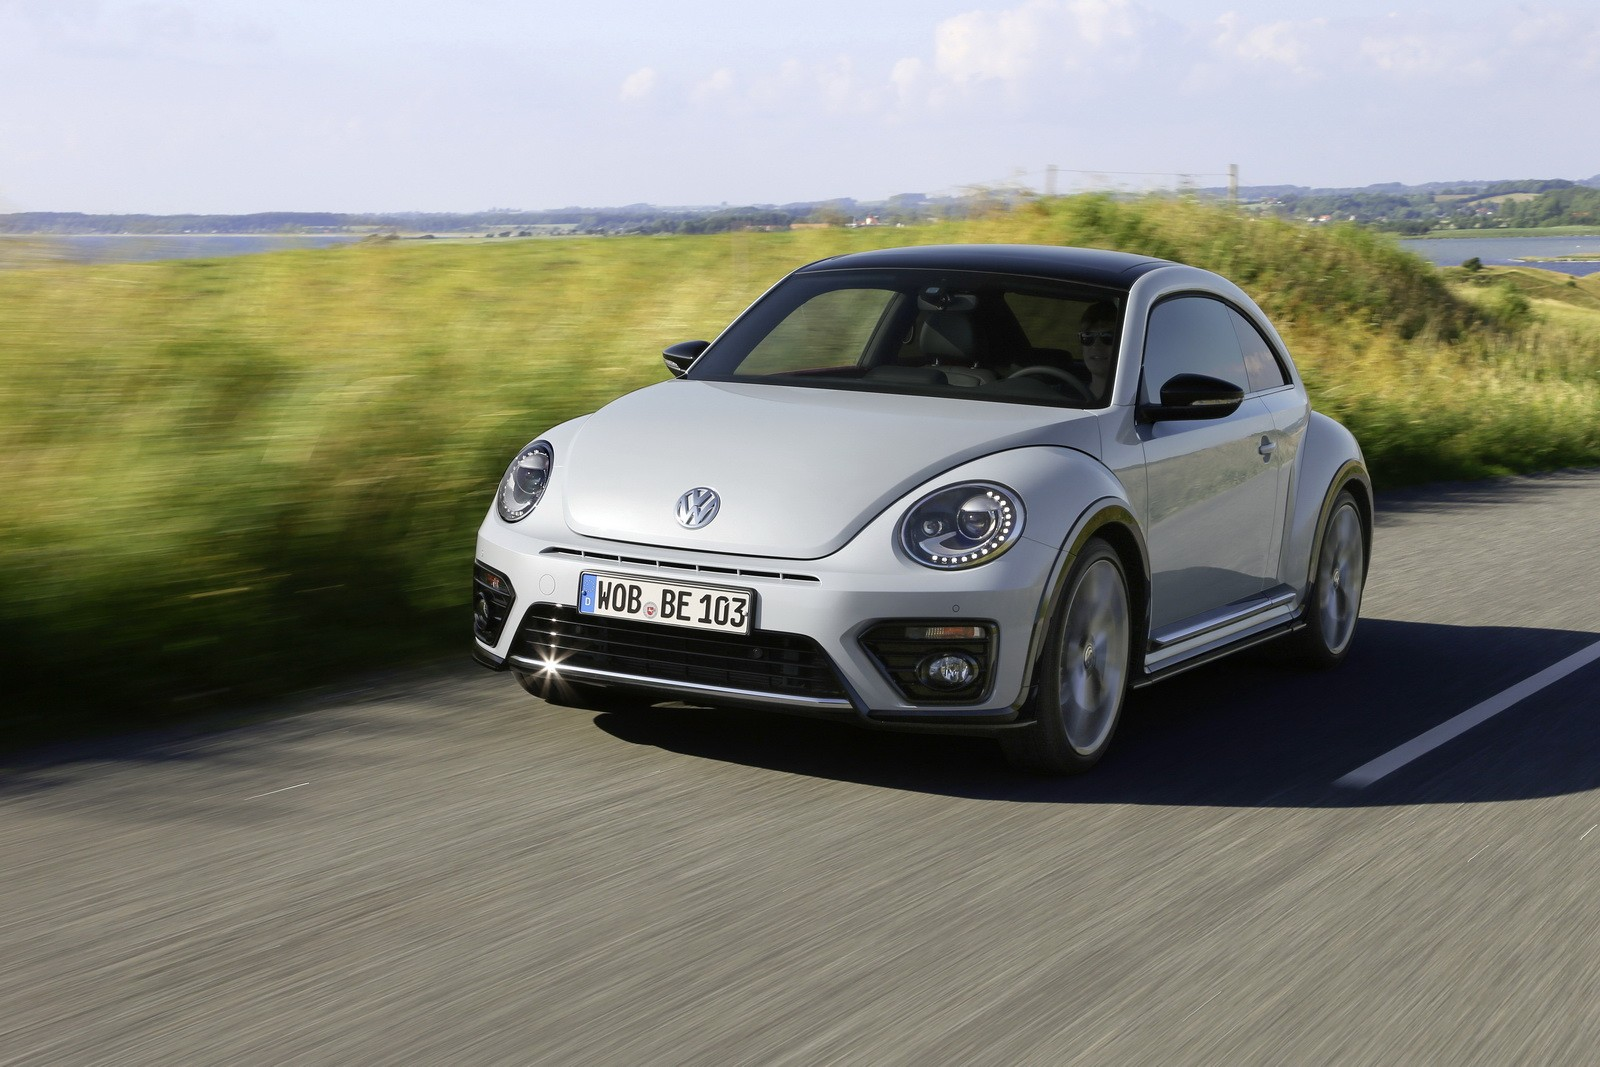 2017 Volkswagen Beetle Detailed in New Photos and Videos - autoevolution